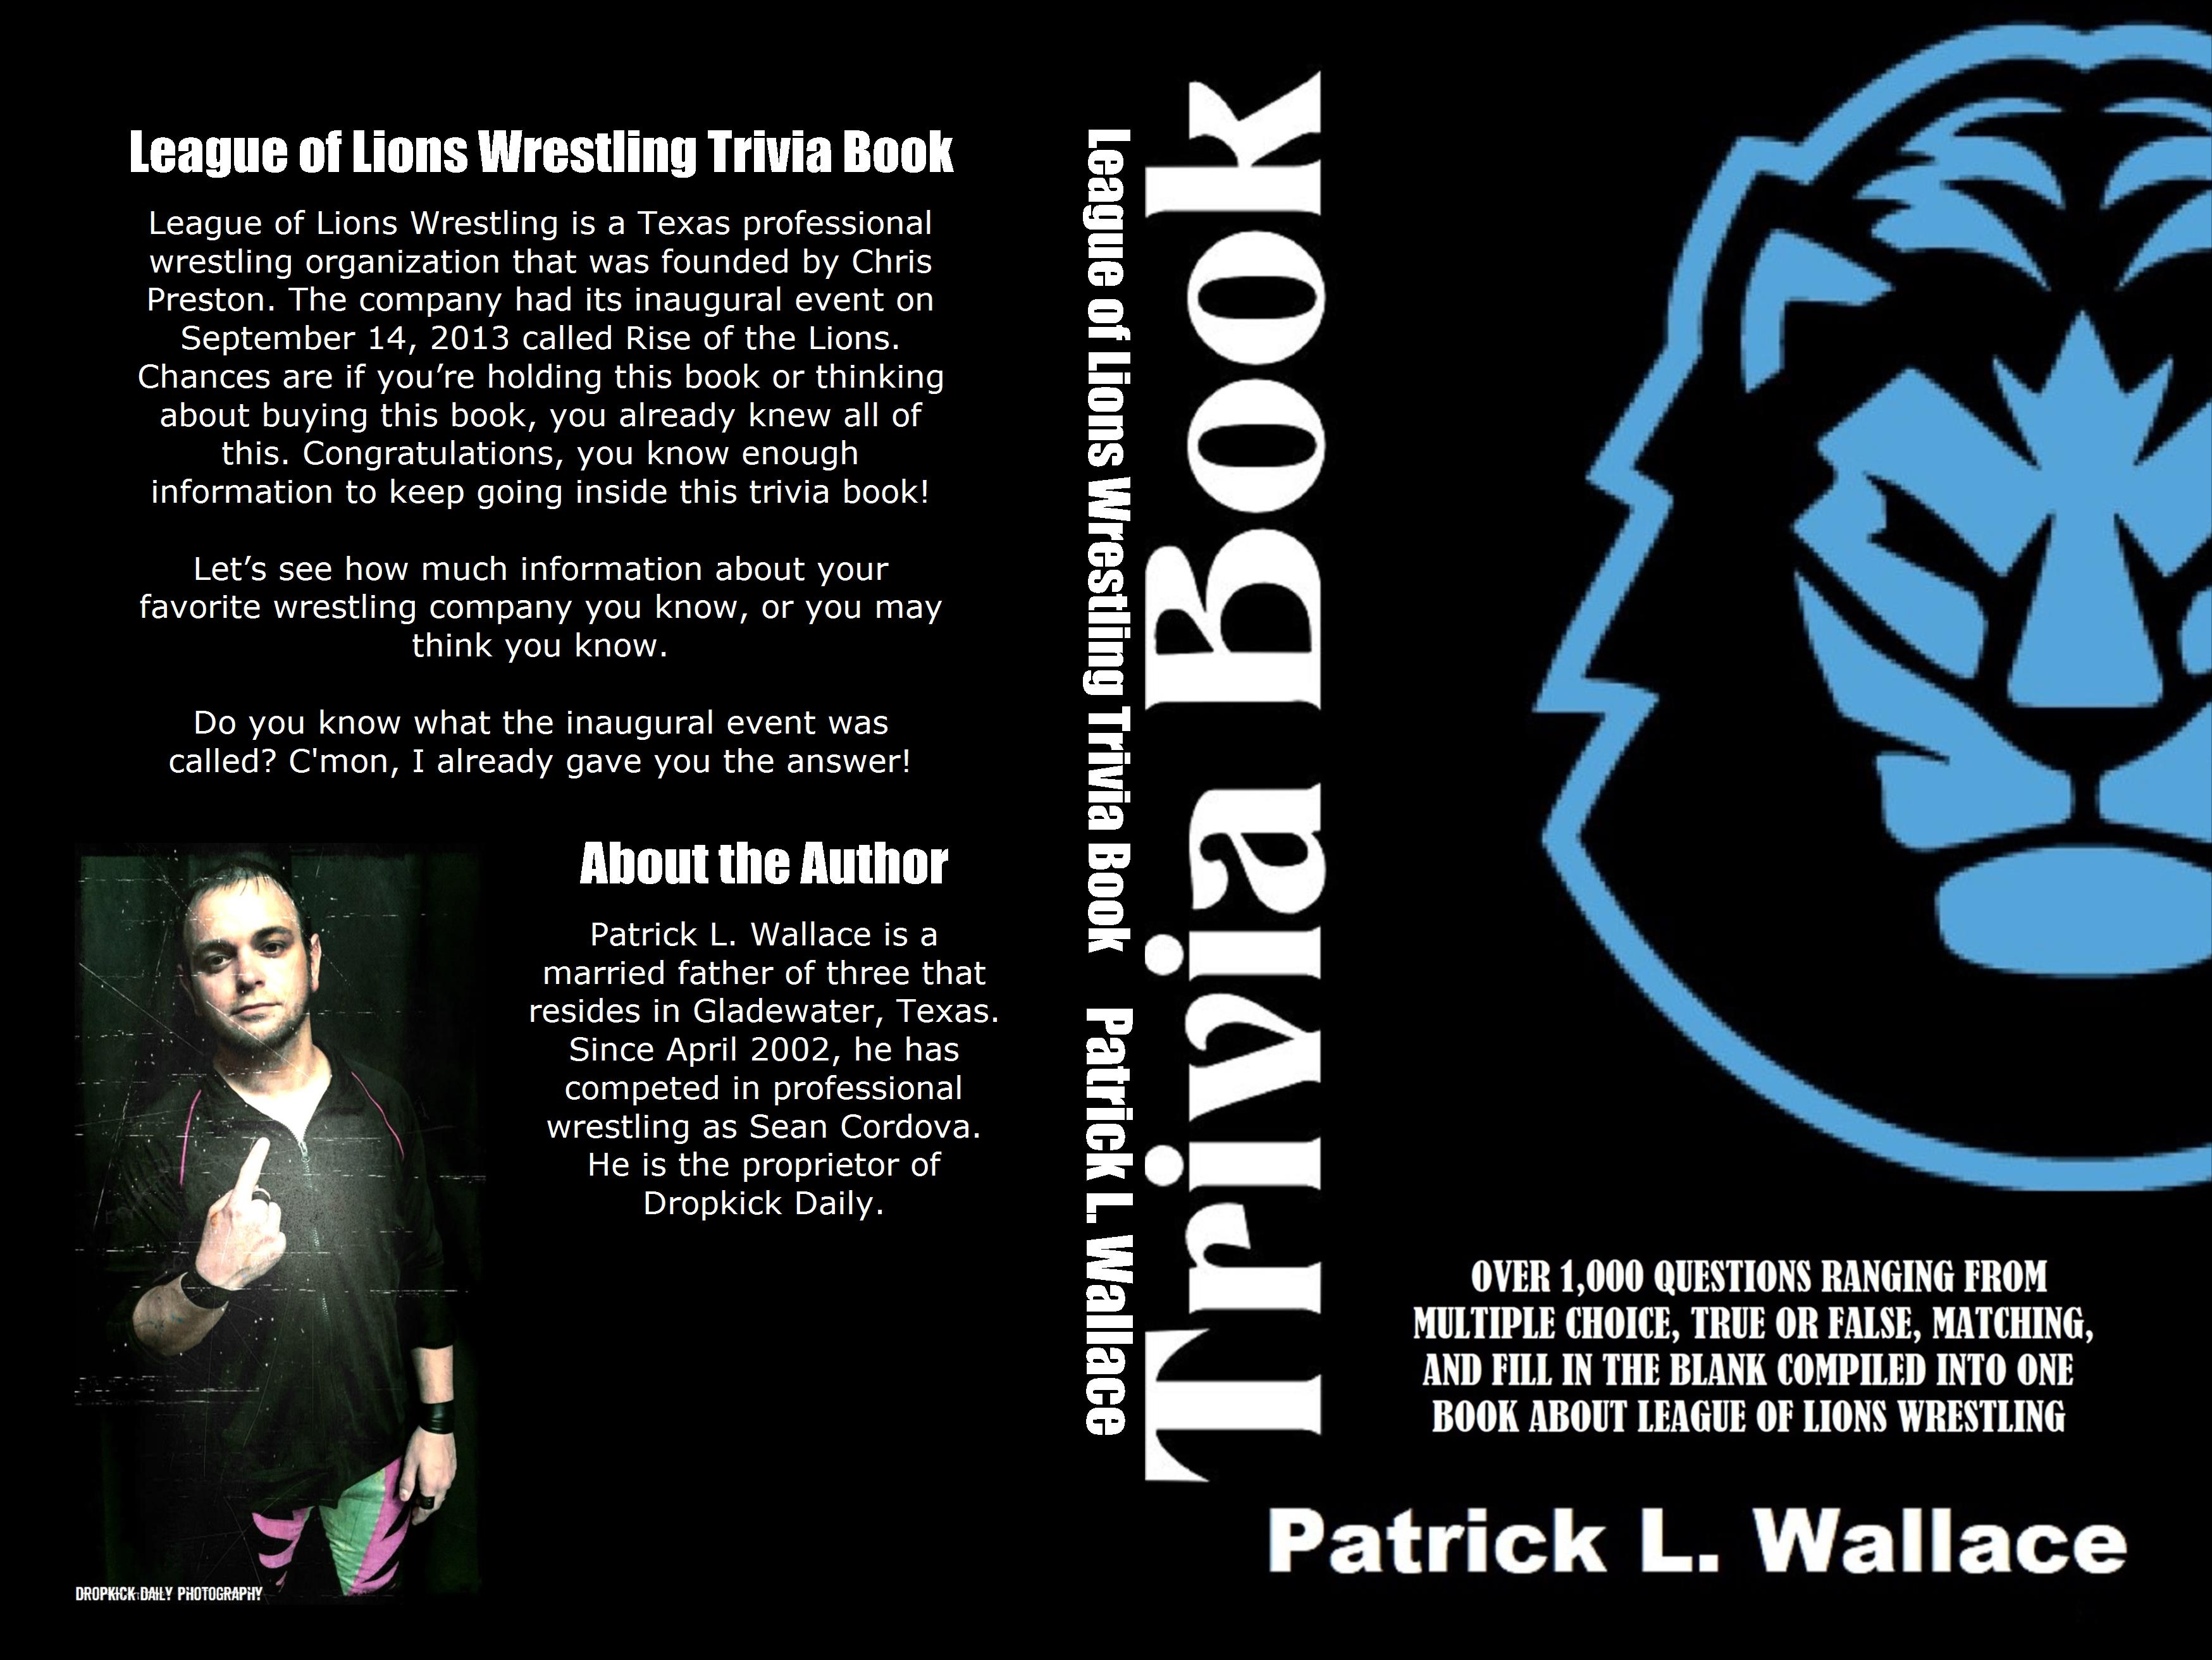 League of Lions Wrestling Trivia Book cover image